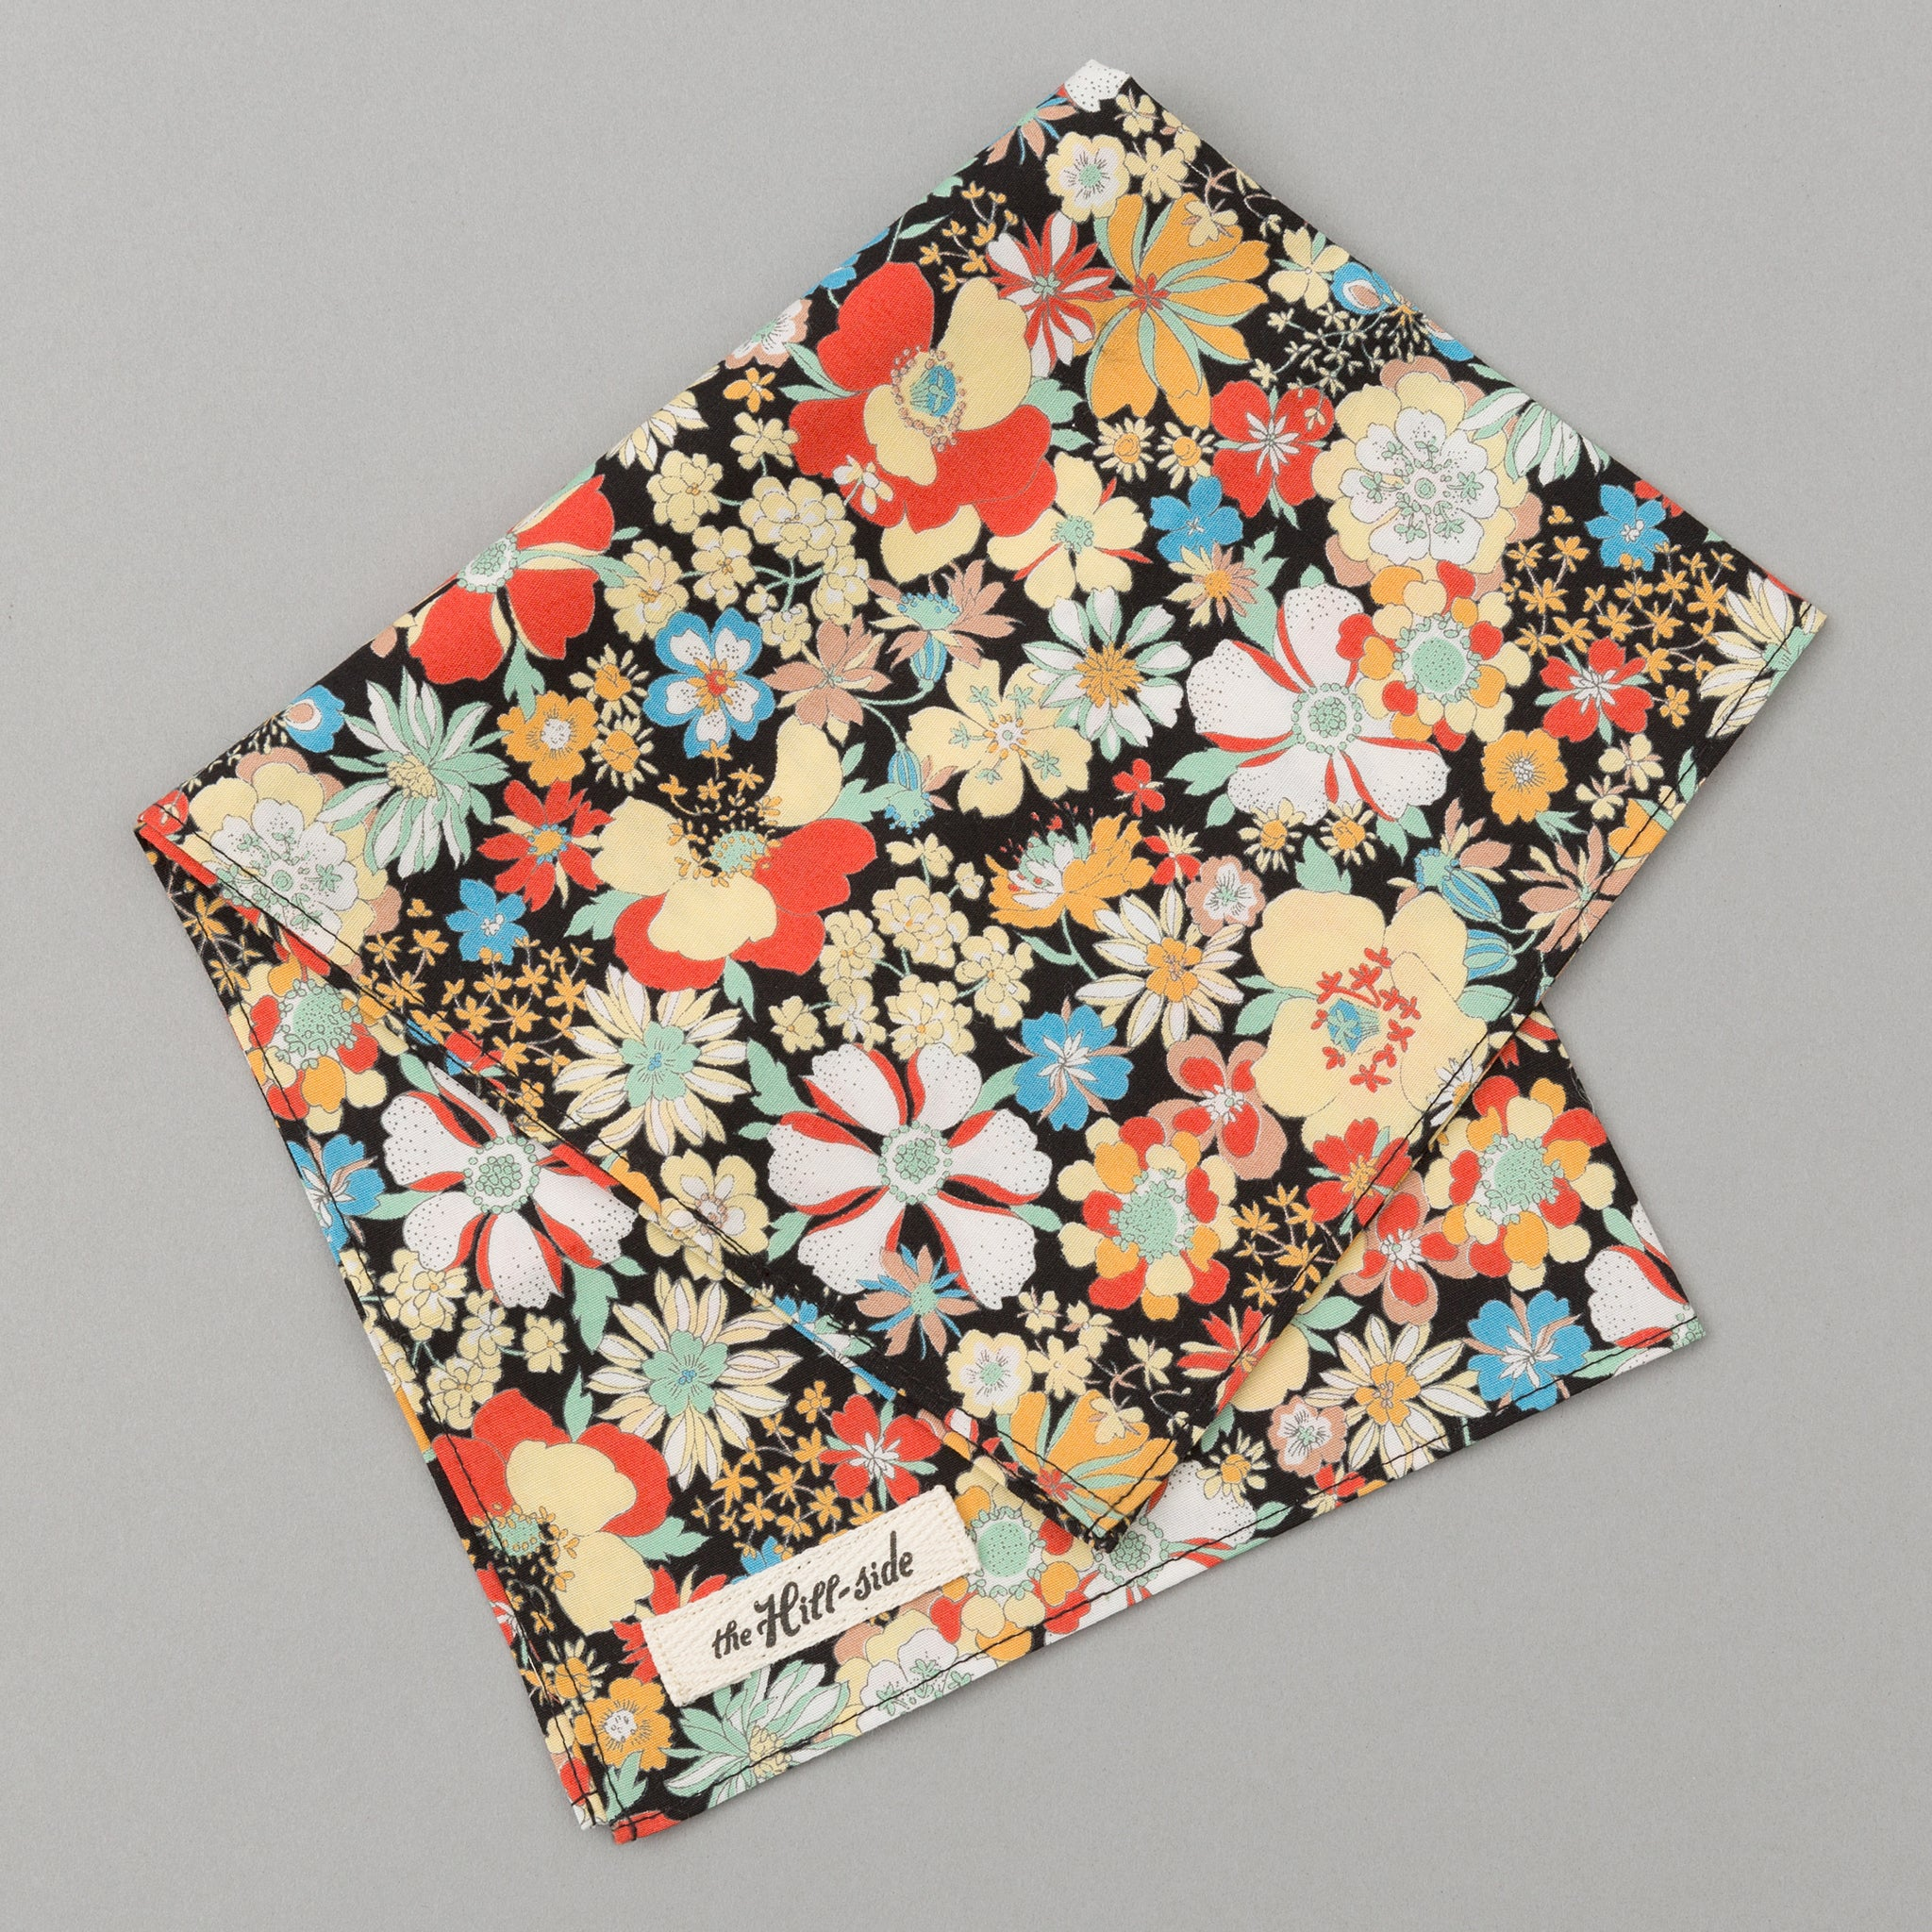 The Hill-Side - Psychedelic Floral Print Pocket Square, Black - PS1-489 - image 1